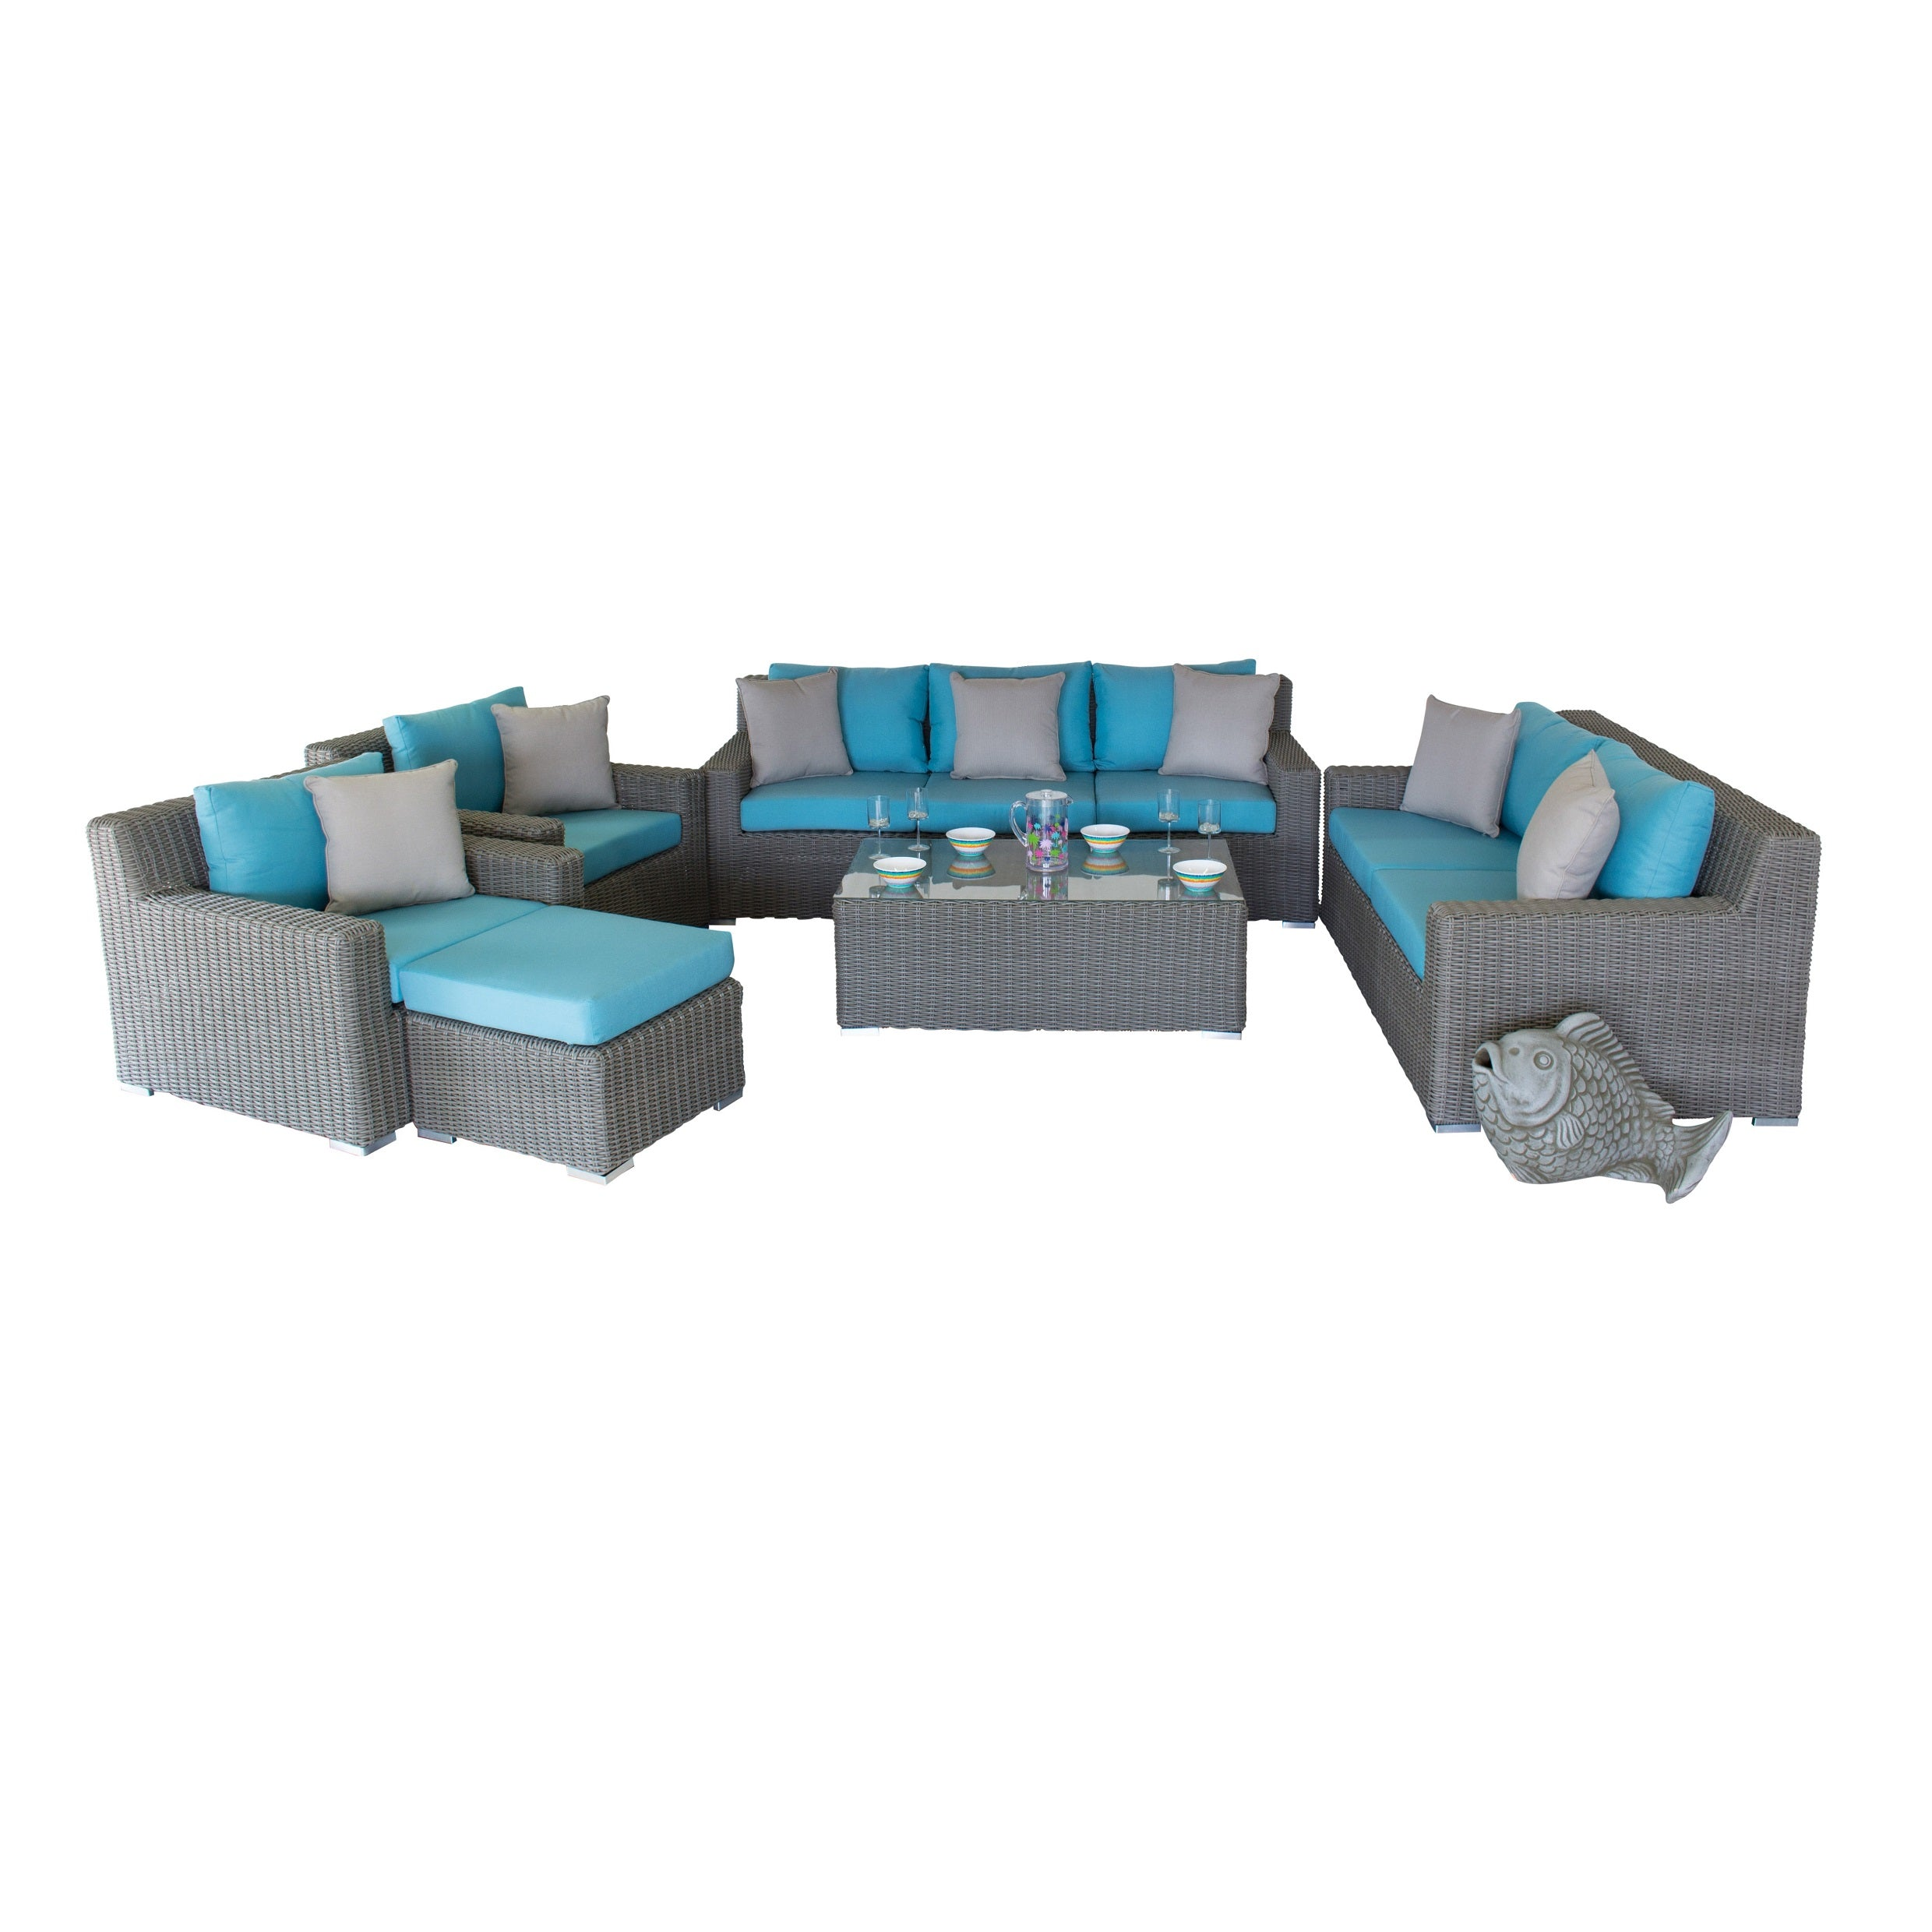 Mighty Gray Collection - 7pc. Sofa Set